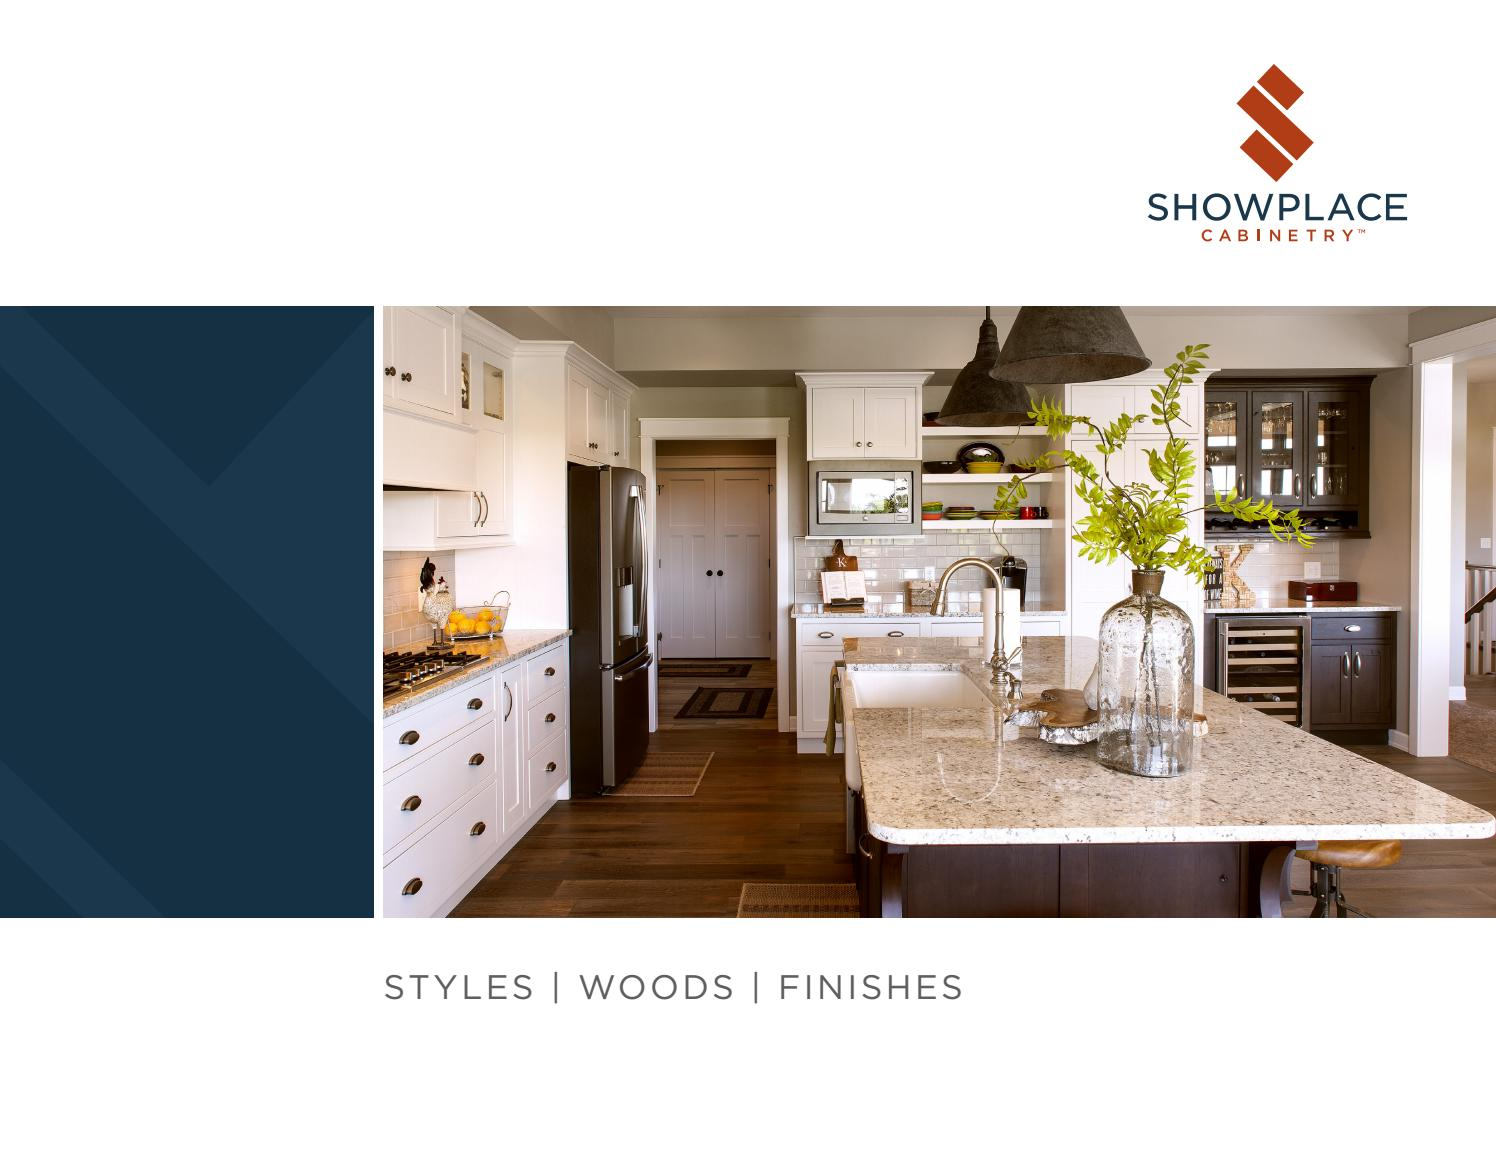 Showplace Cabinetry Styles Woods Finishes By Showplace Wood Products Issuu